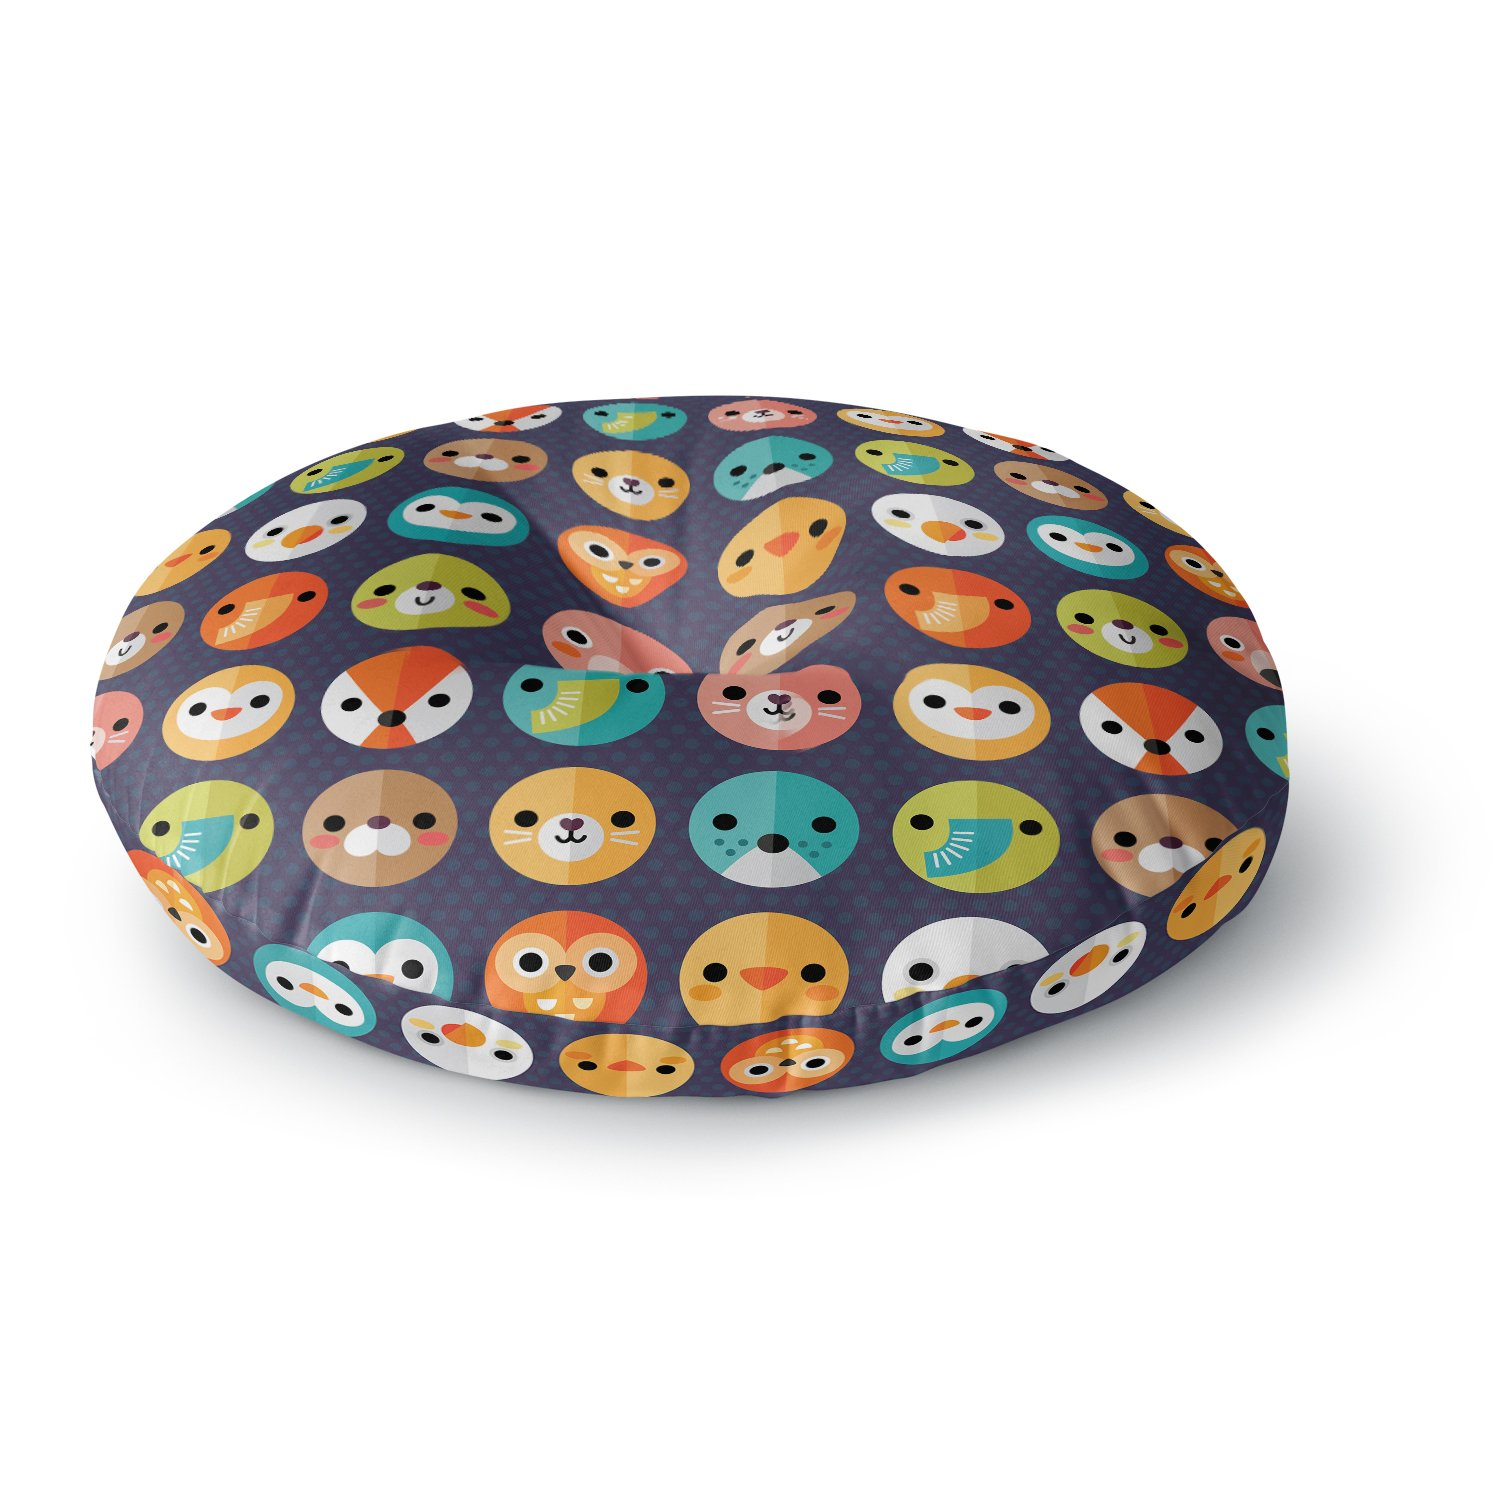 KESS InHouse Daisy Beatrice Smiley Faces Repeat Animal Pattern Round Floor Pillow, 26'' by Kess InHouse (Image #1)